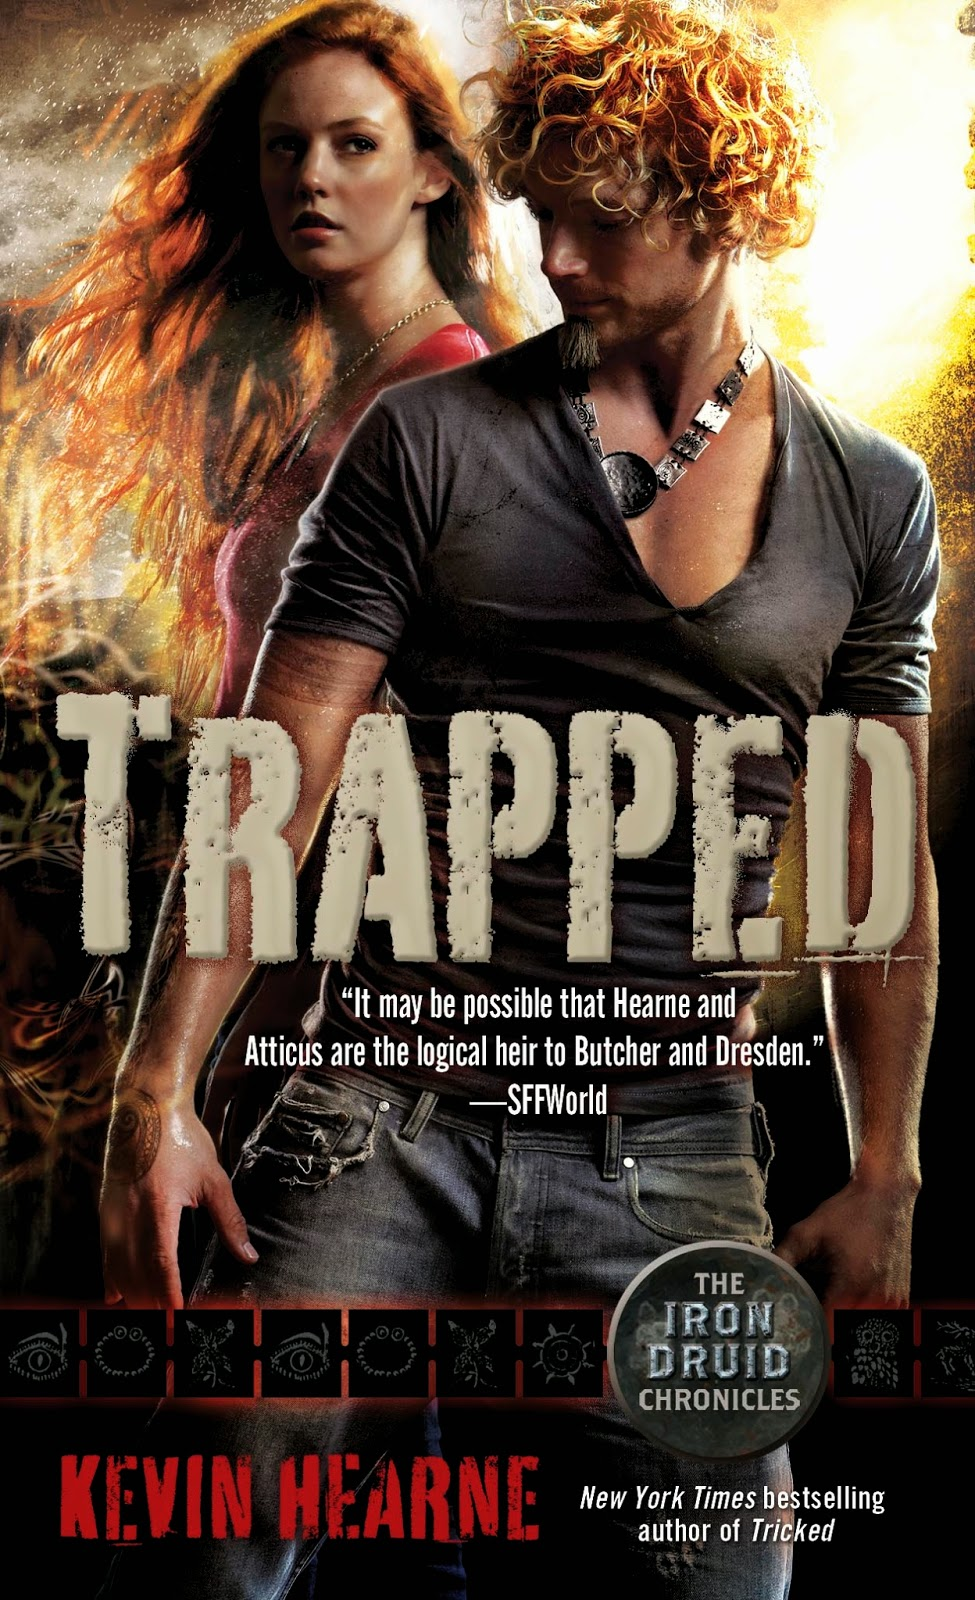 https://www.goodreads.com/book/show/13536649-trapped